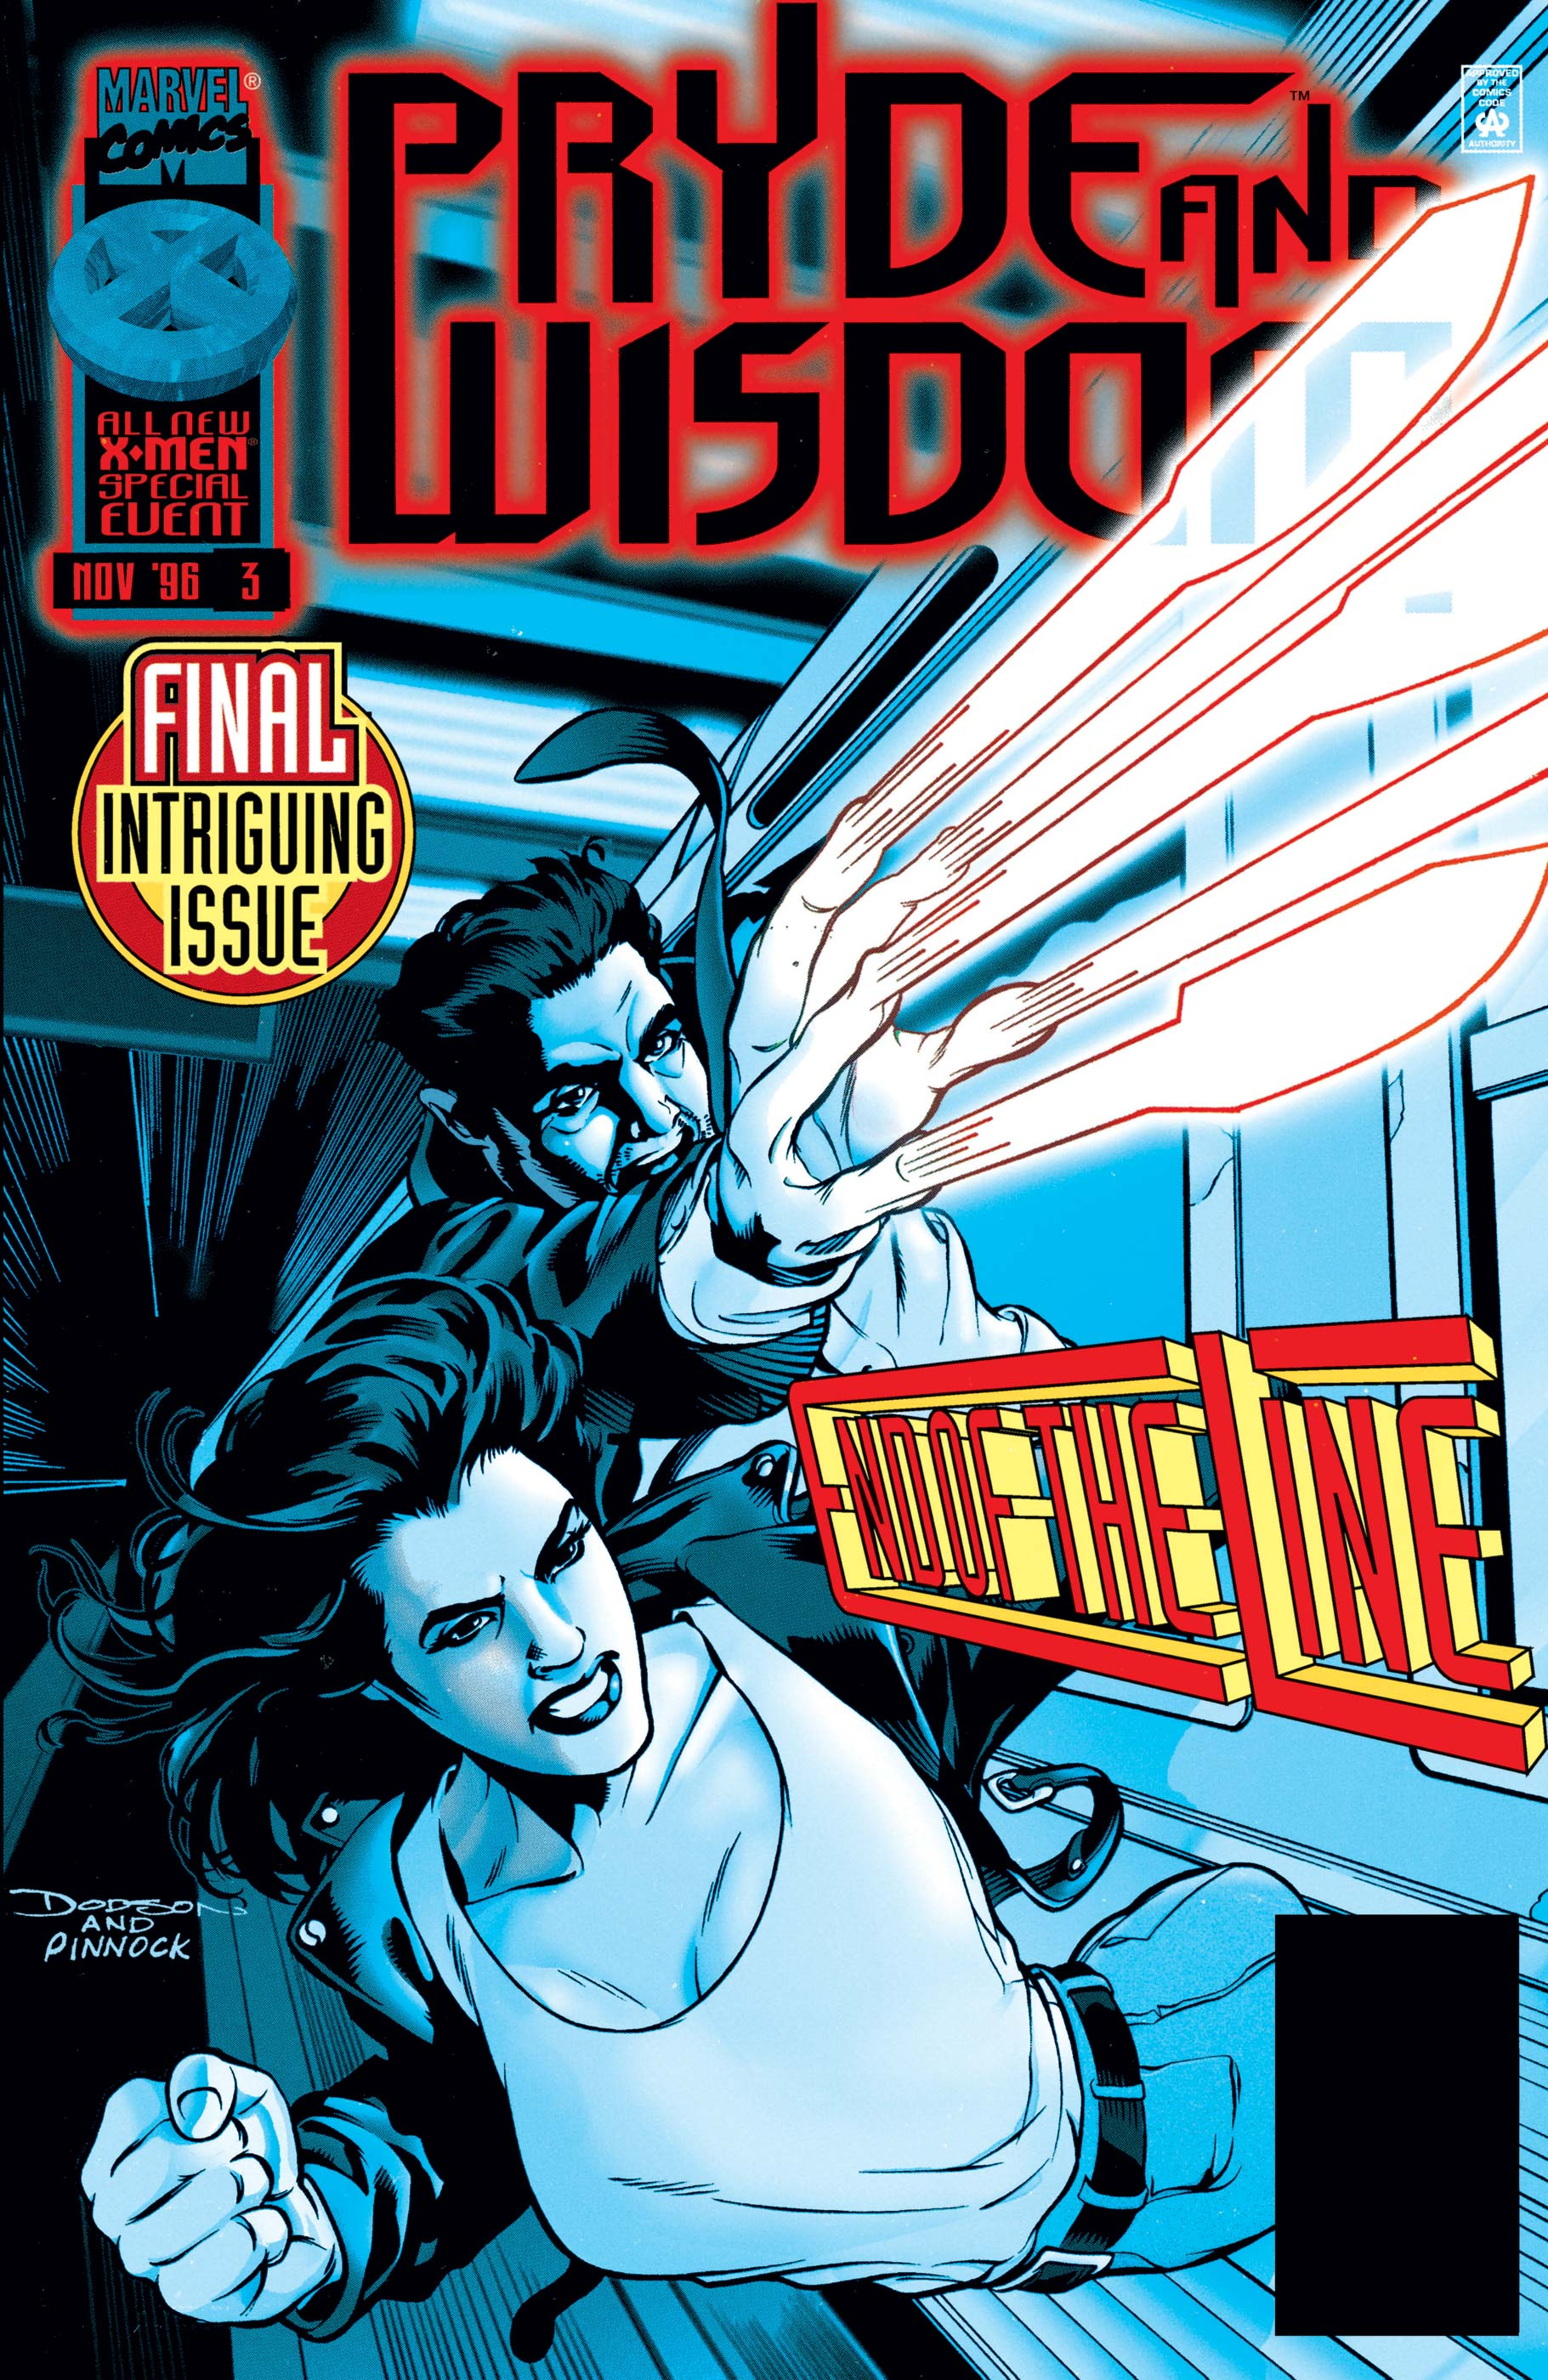 Pryde and Wisdom (1996) #3